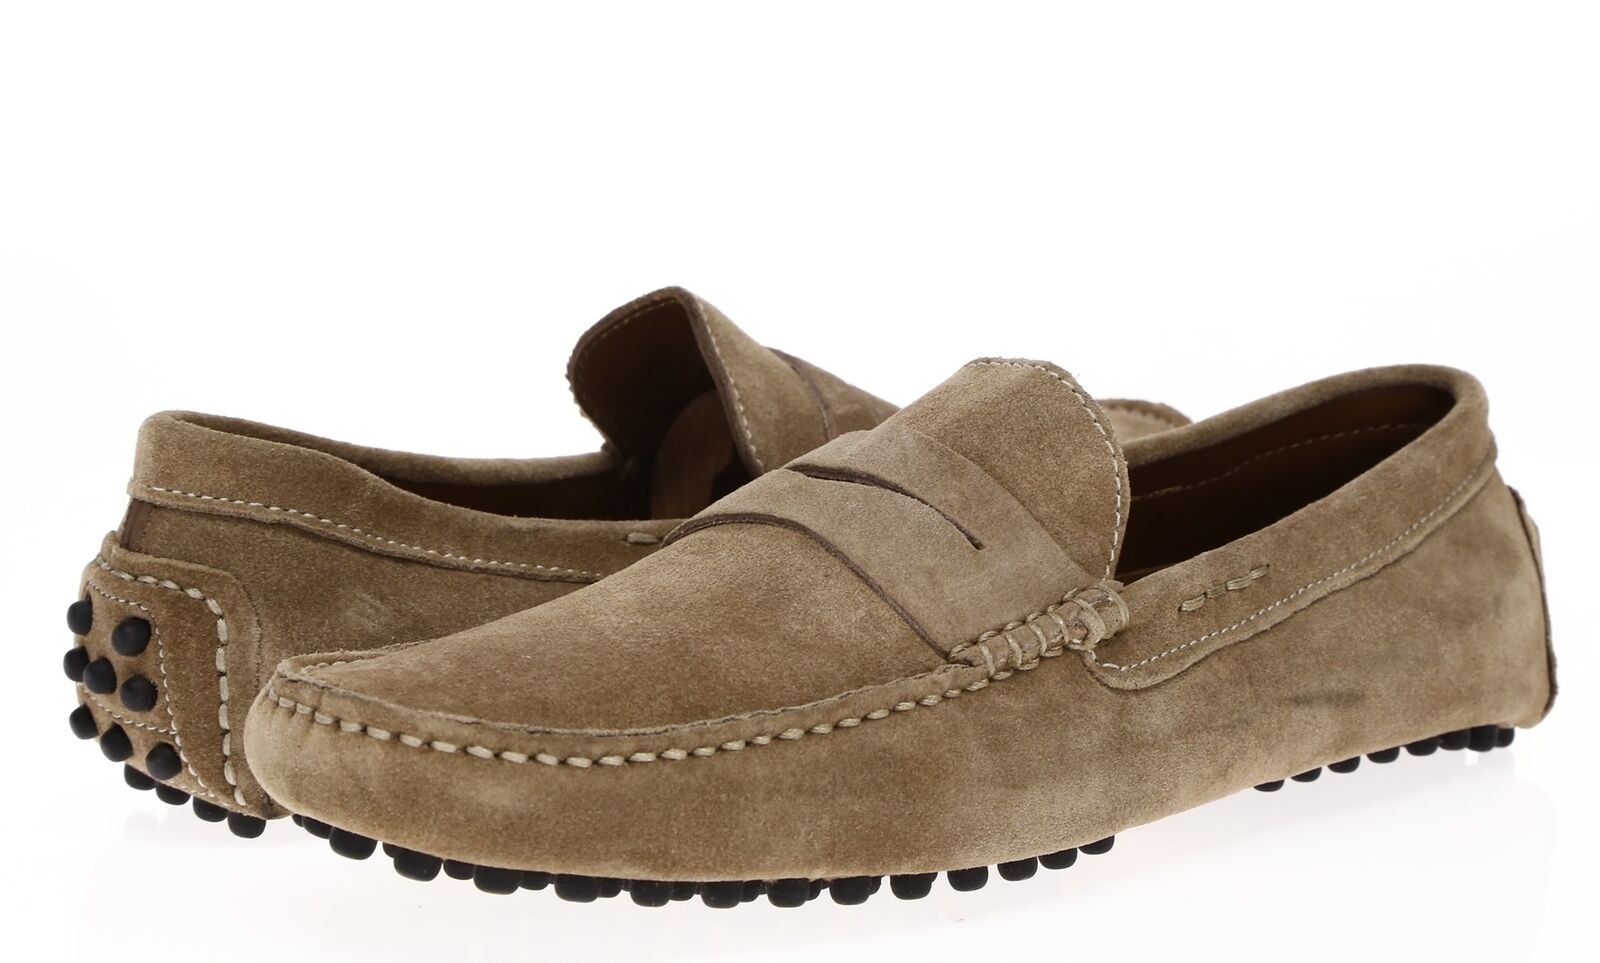 G BROWN Mens Taupe Suede Moccasins Sz 9.5 M